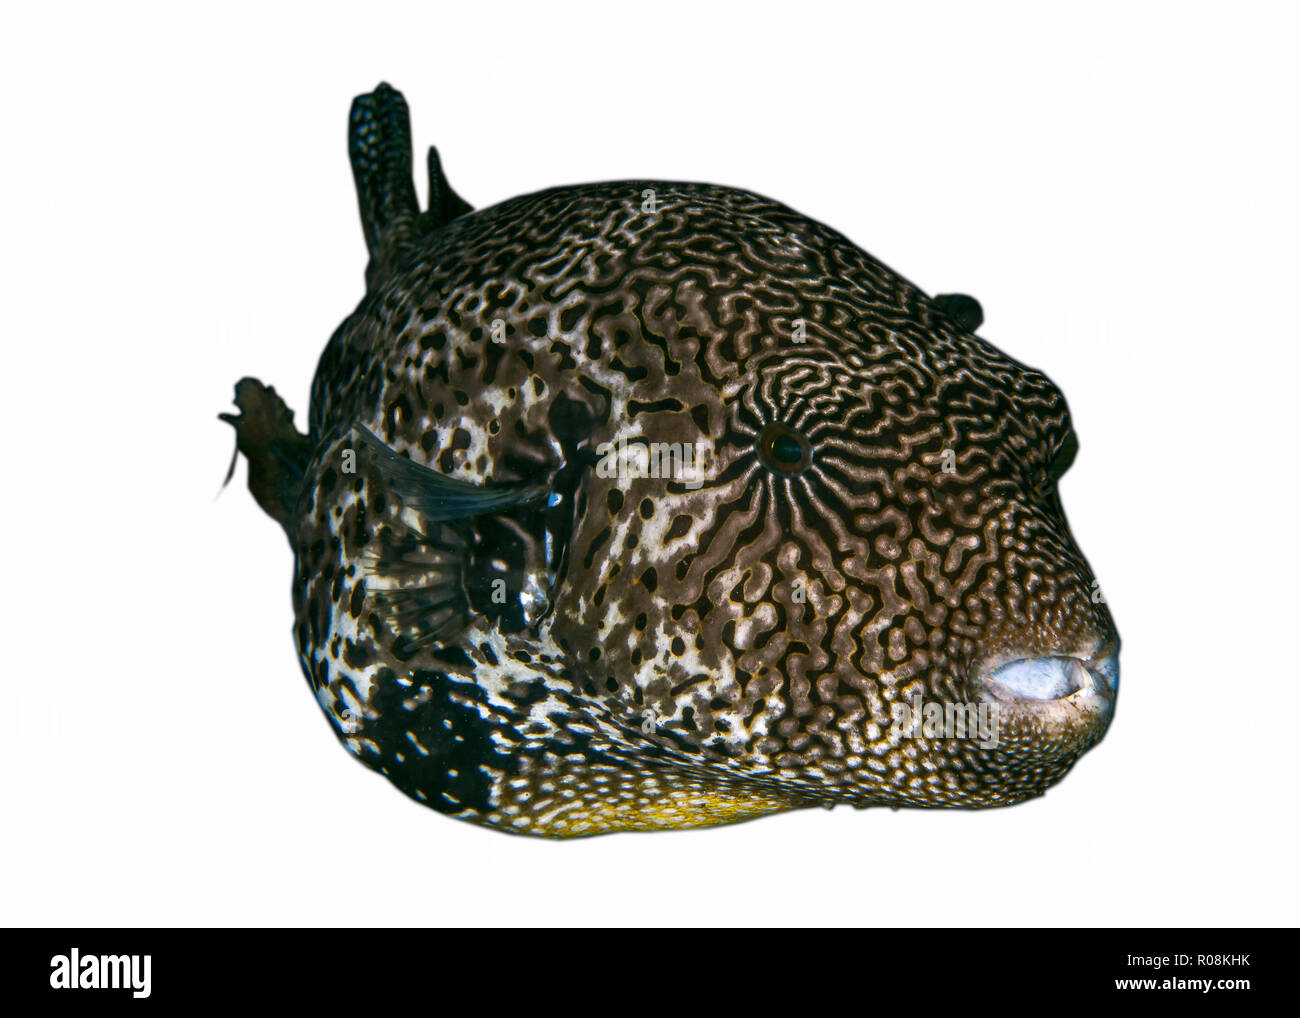 Large map pufferfish on white background. Ambon, Indonesia Stock Photo